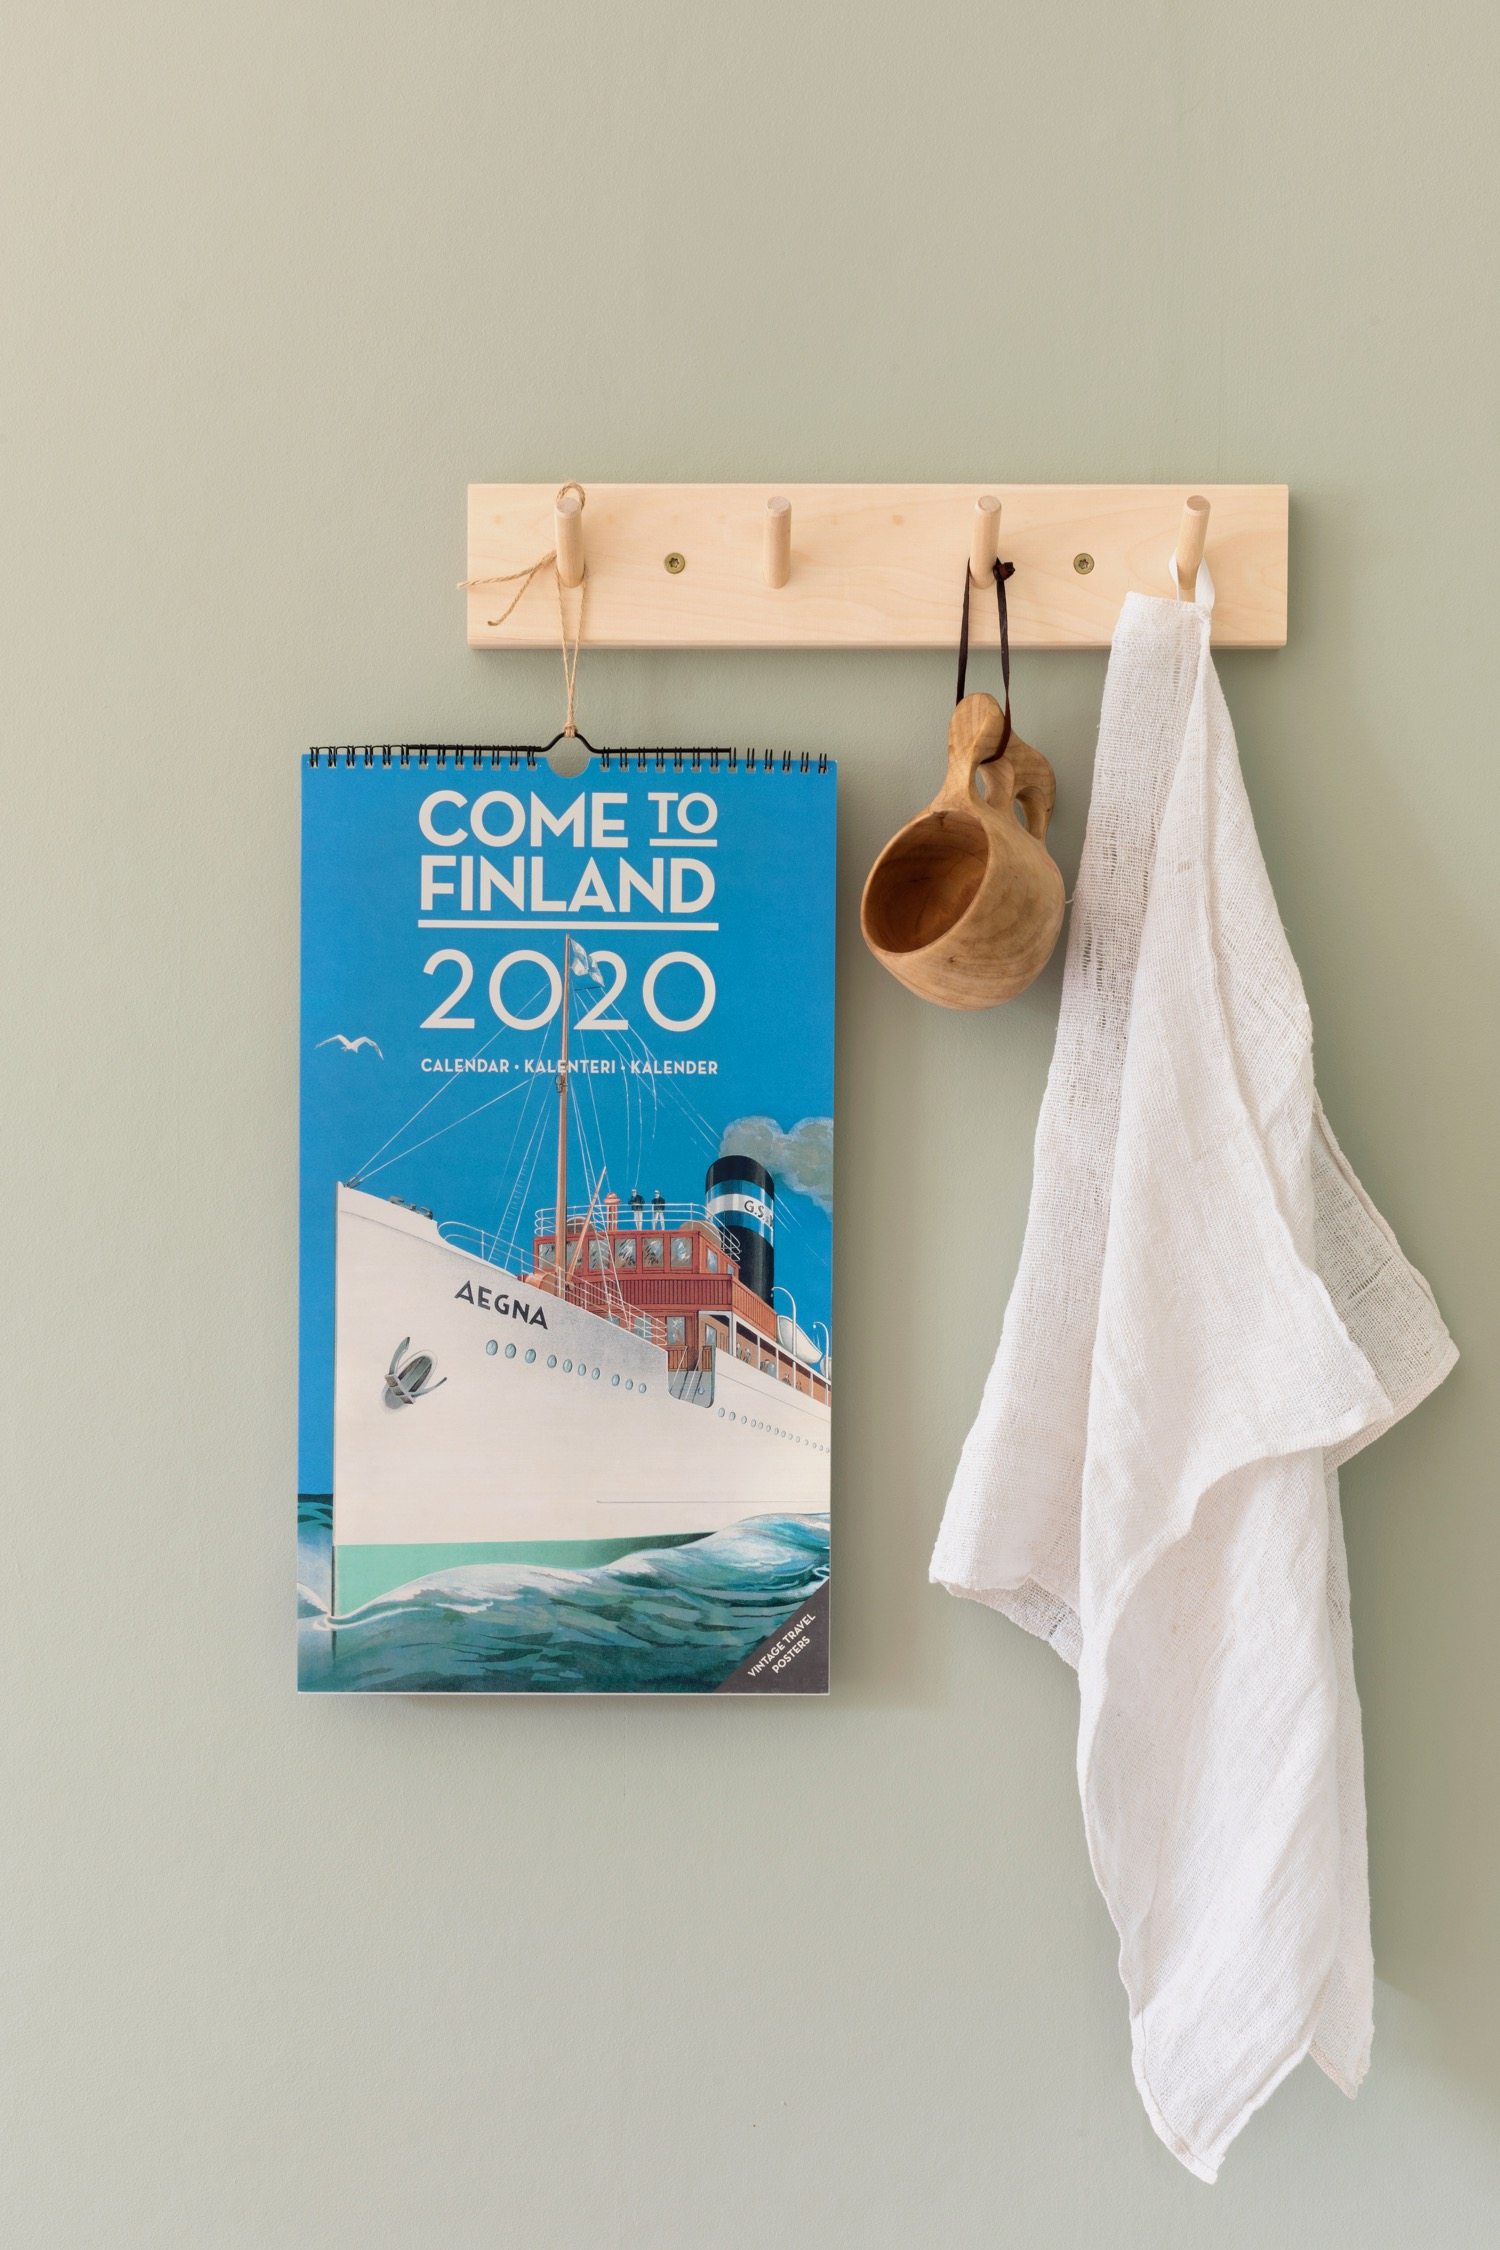 Wall calendar for Come to Finland